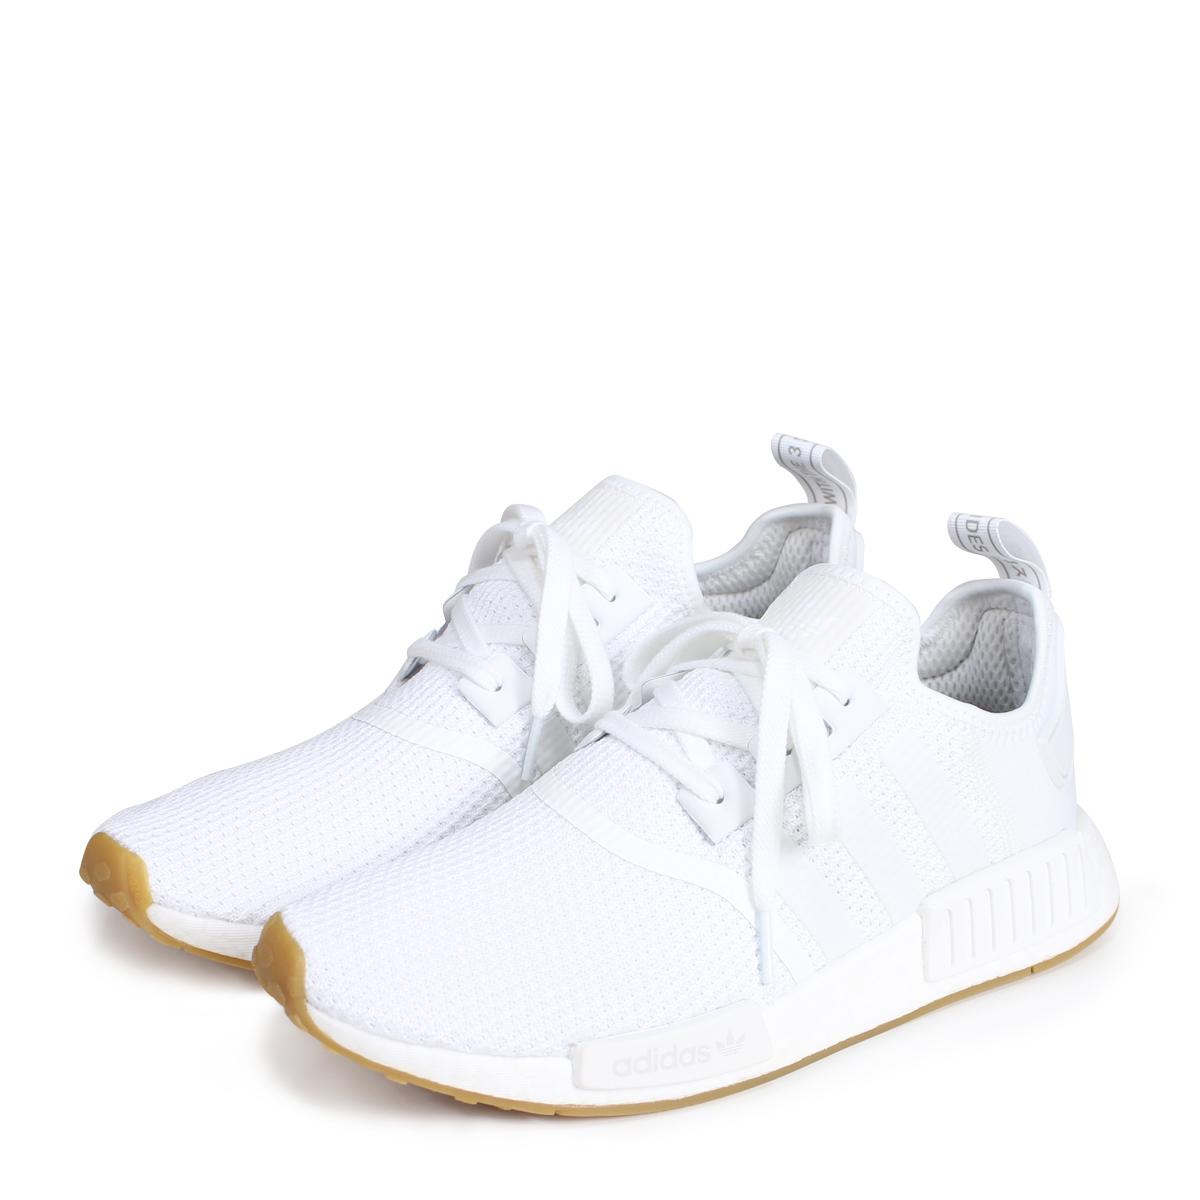 size 40 8d4c7 58273 adidas originals NMD R1 Adidas originals sneakers N M D nomad men D96635  white [load planned Shinnyu load in reservation product 7/7 containing]  [187]